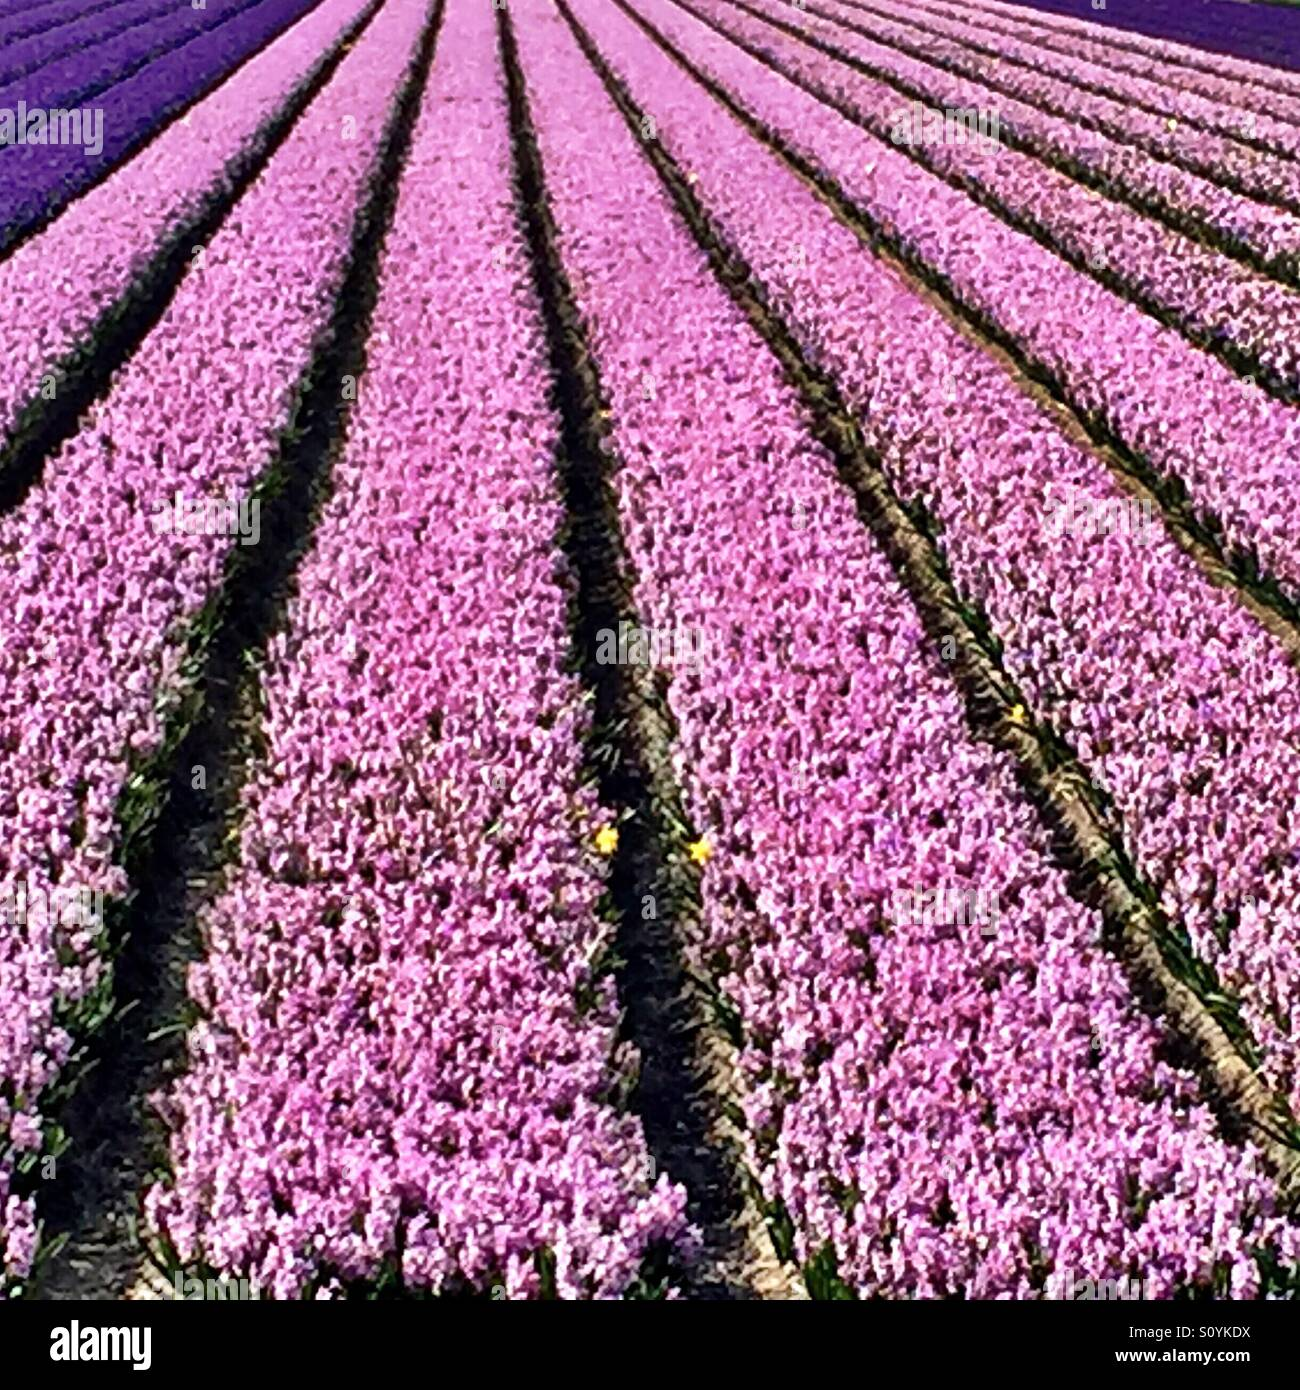 Fields of blooming pink and purple hyacinth in Holland. - Stock Image